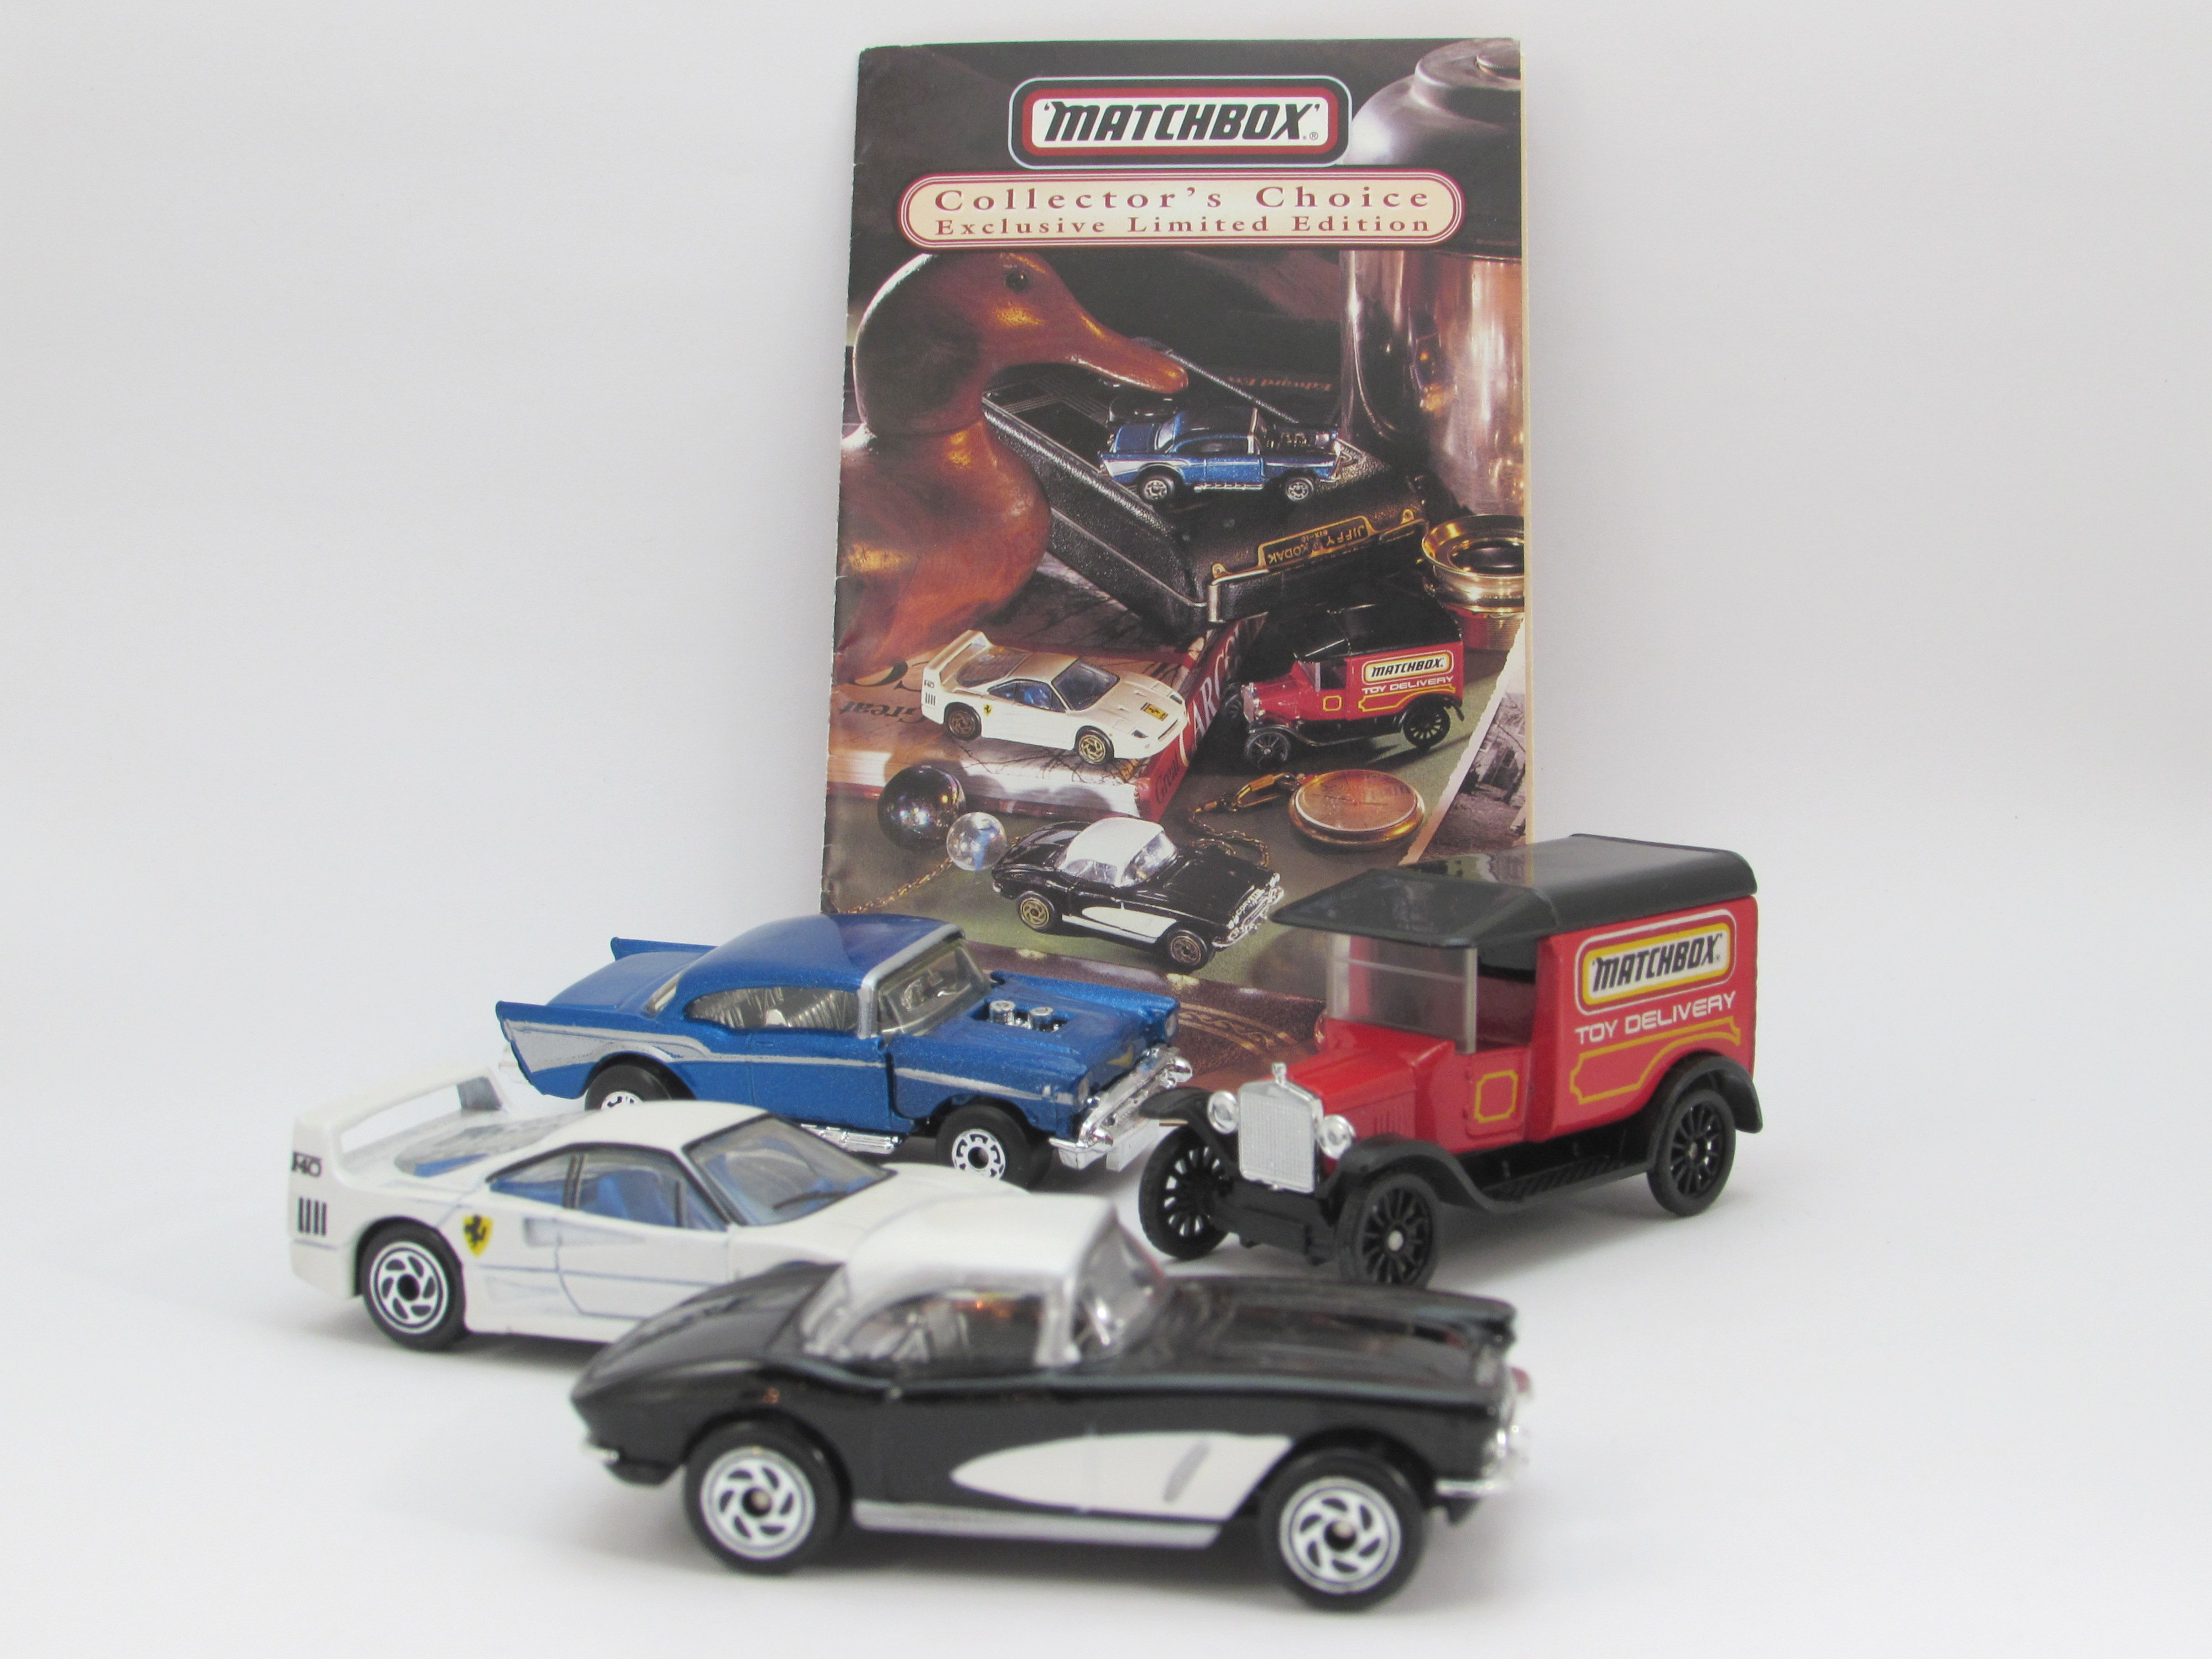 Pick Your Vehicle with box Matchbox Collector/'s Choice Limited Edition